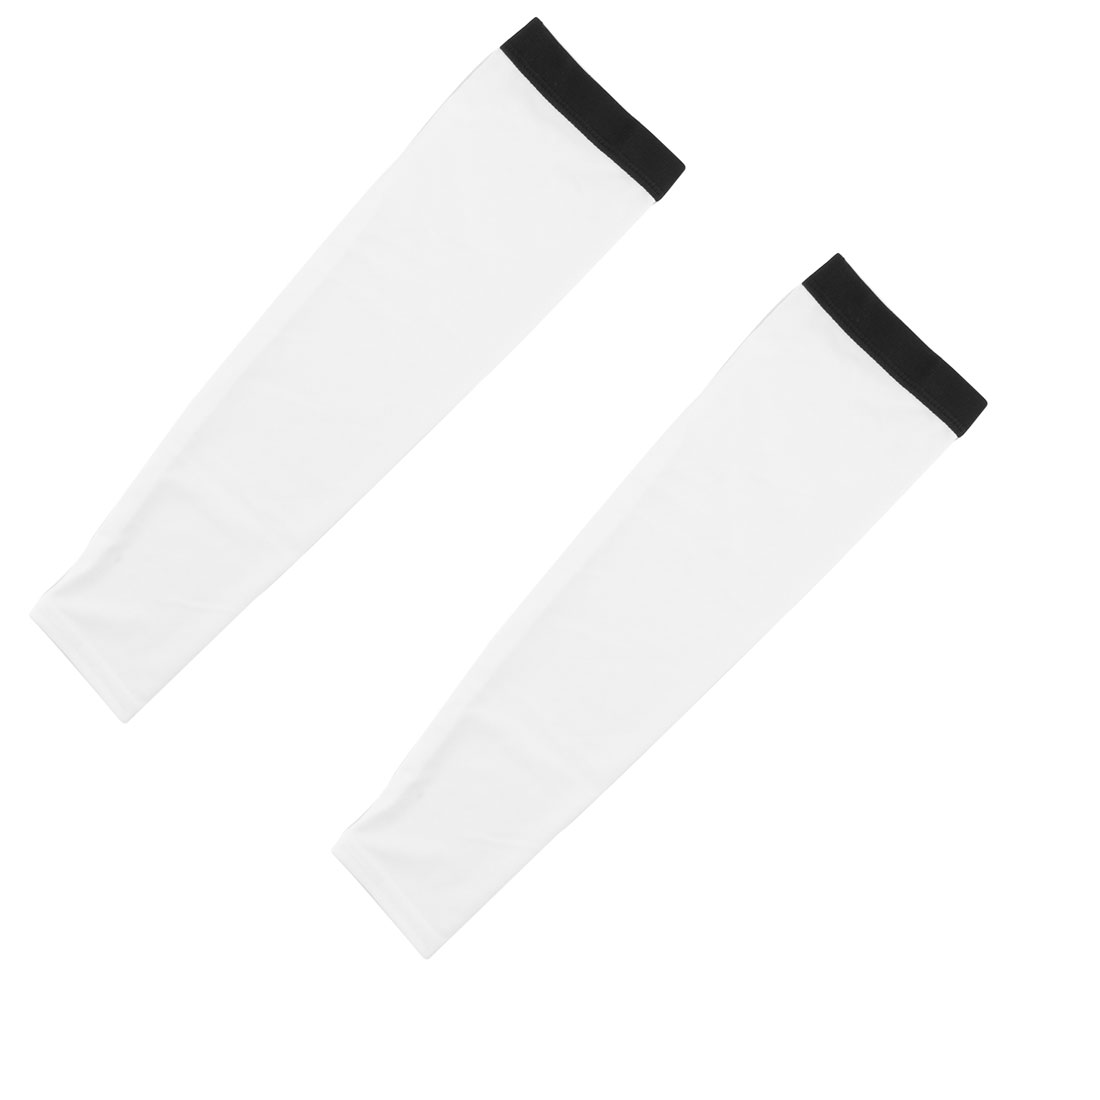 Outdoor Cycling Polyester Anti-UV Stretchy Arm Sleeves Cover Protection Decor White Size XXL Pair